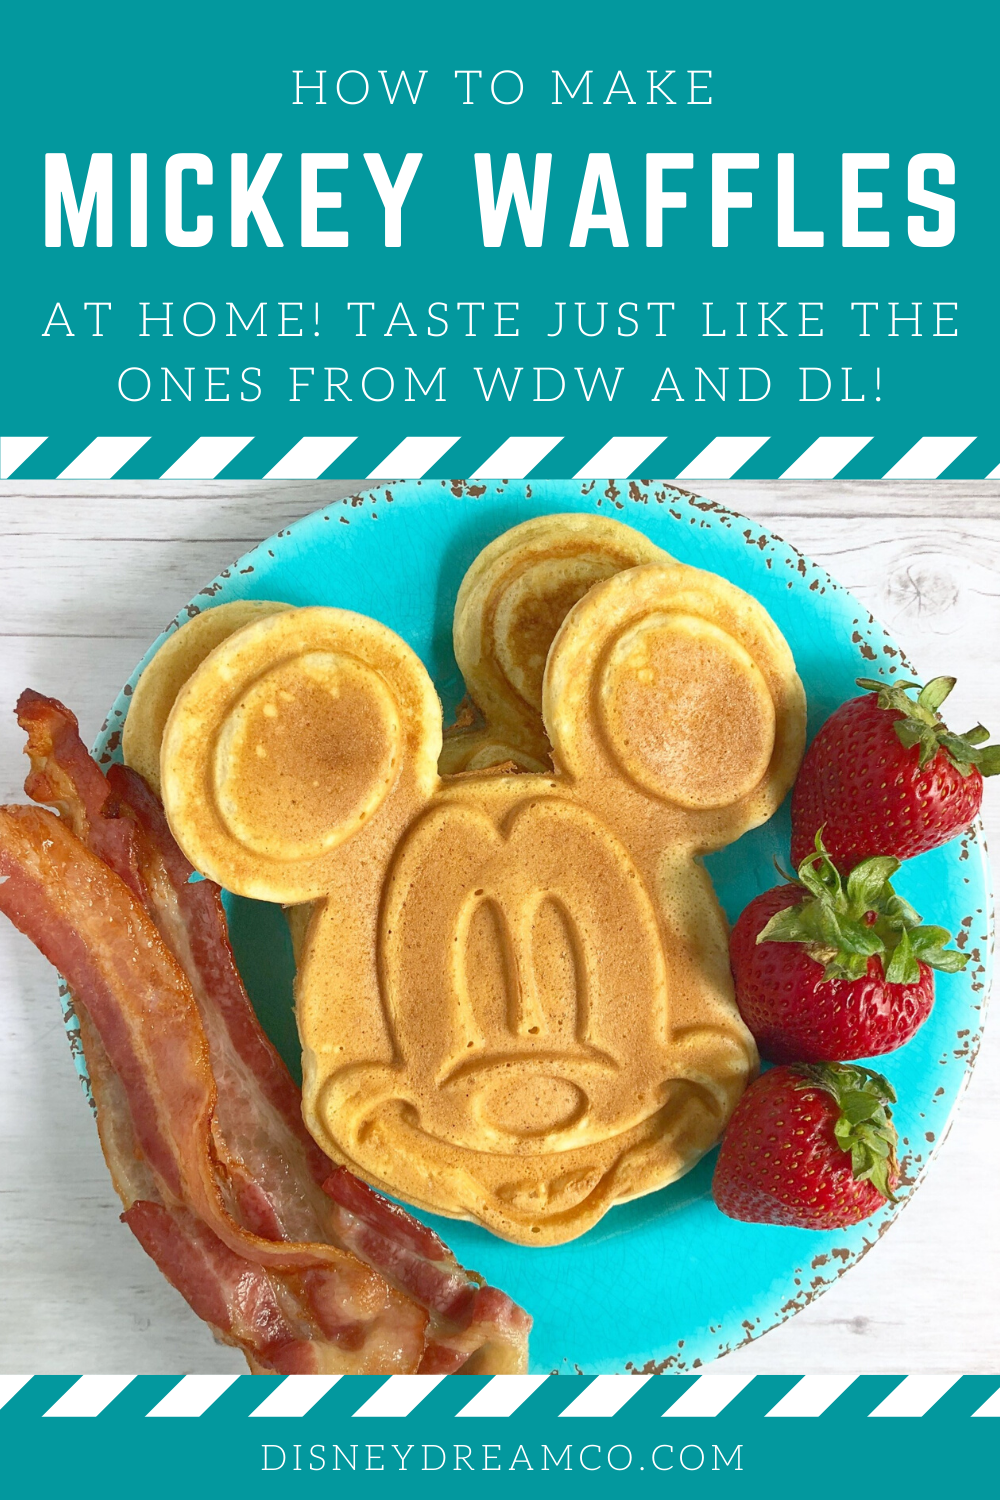 Mickey Waffles How to Make Them at Home in 2020 Disney